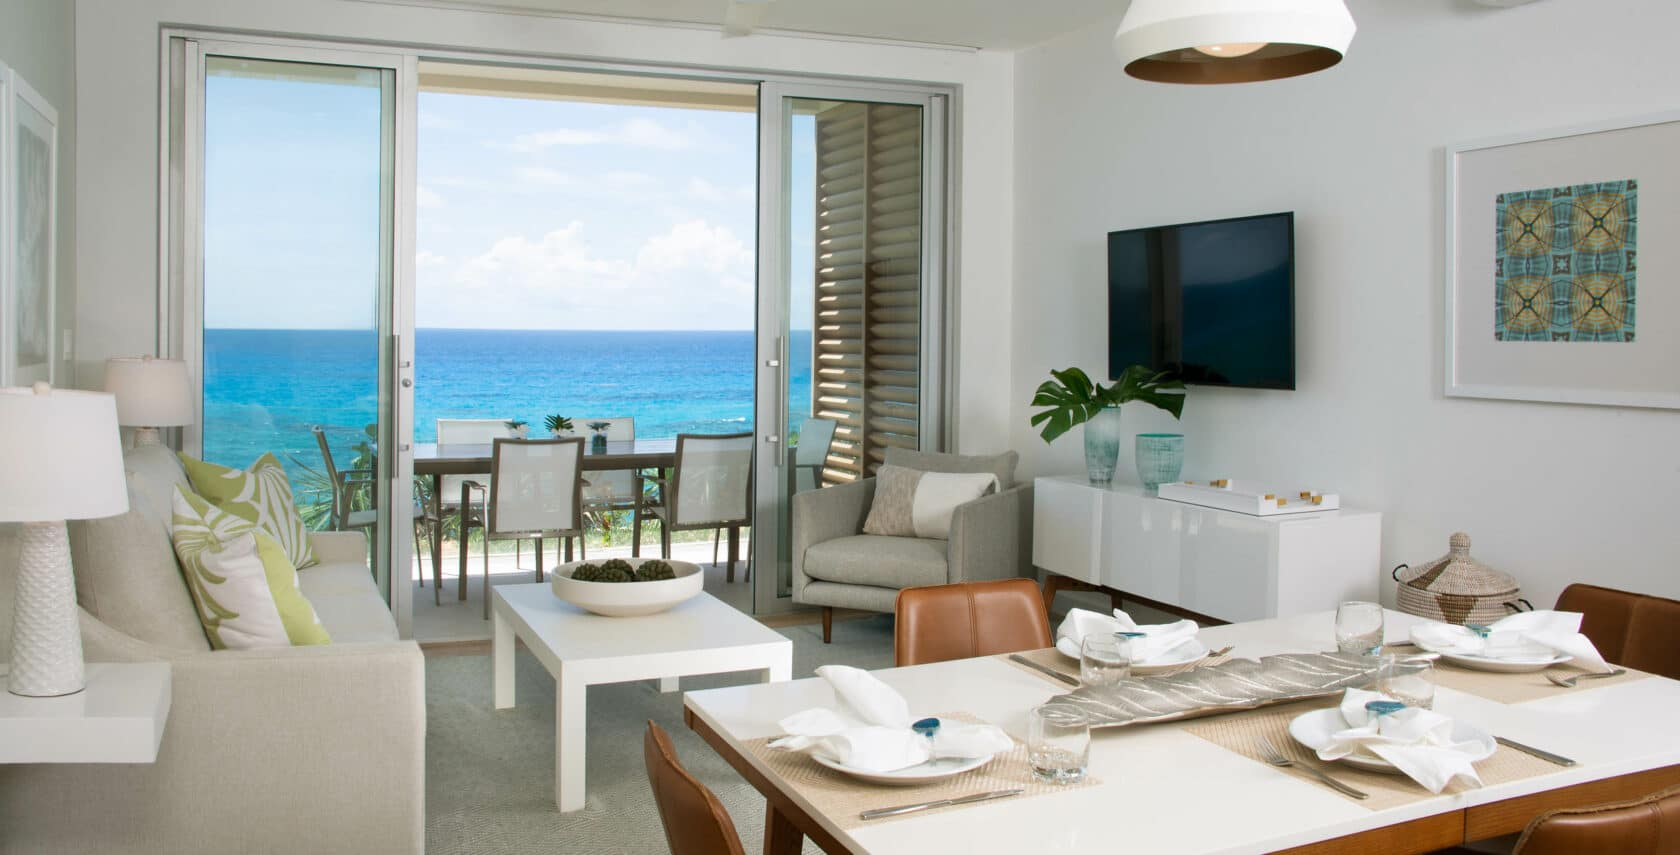 A living and dining area with large glass doors showing an oceanfront view.